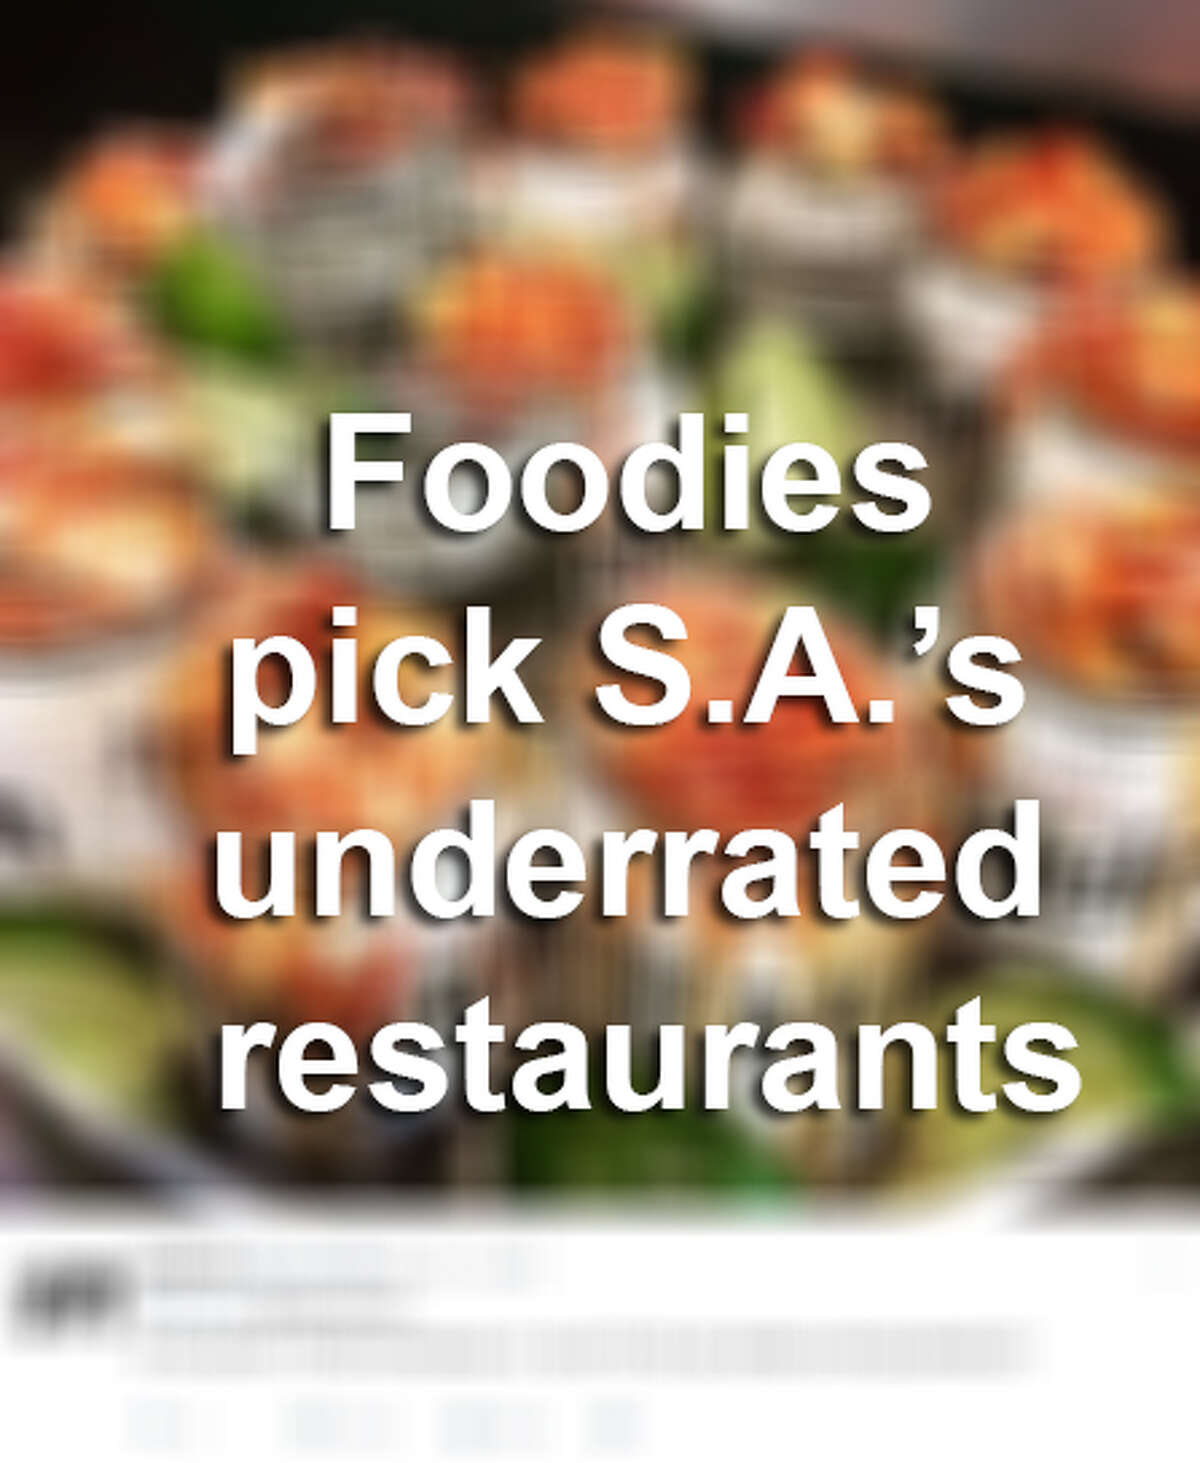 S.A. foodies unite on Twitter to reveal their favorite underrated restaurants